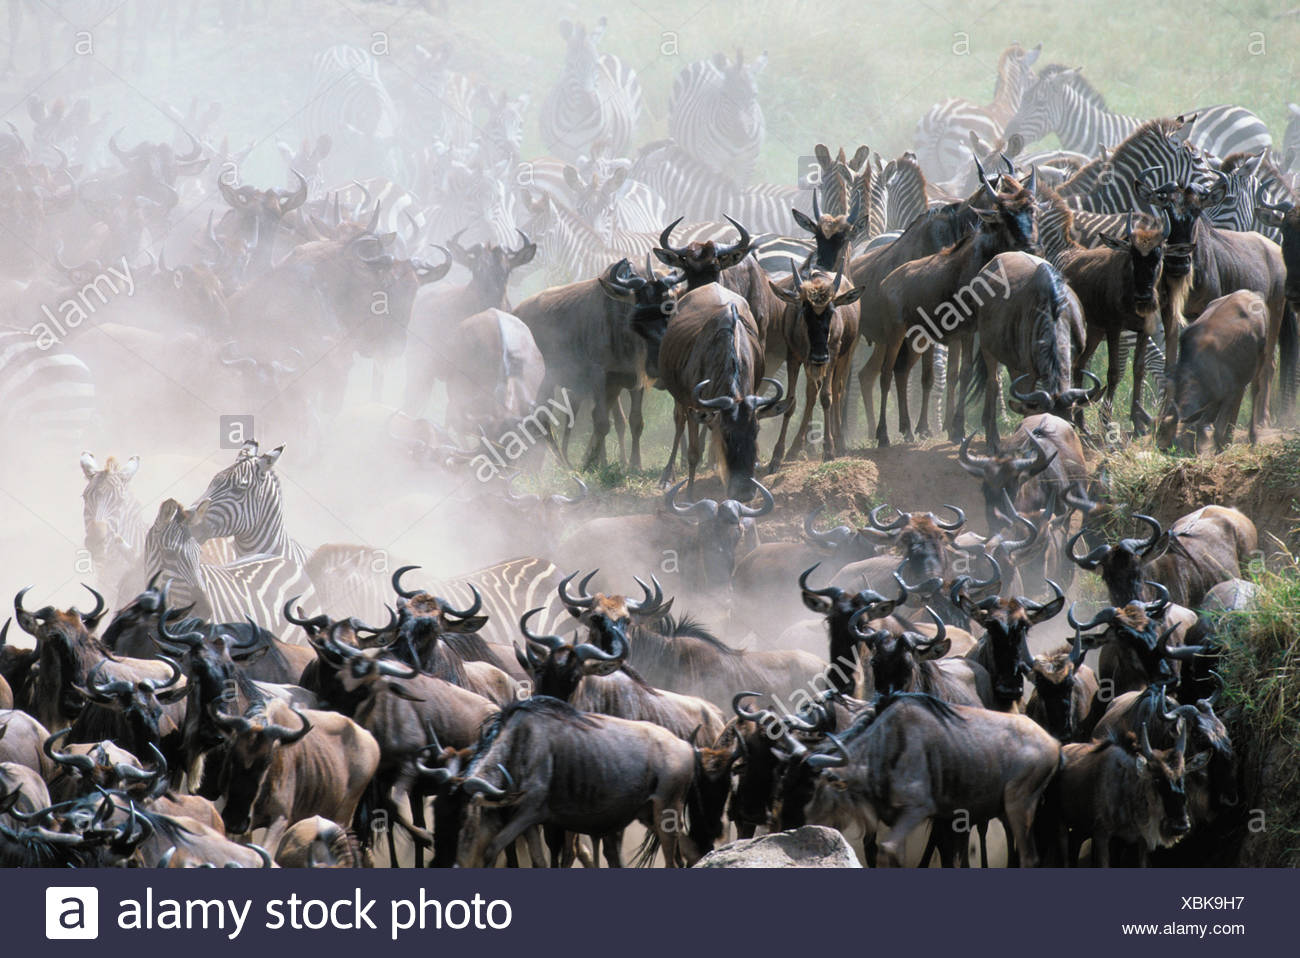 Migrating animals congested at the edge of the Mara River - Stock Image